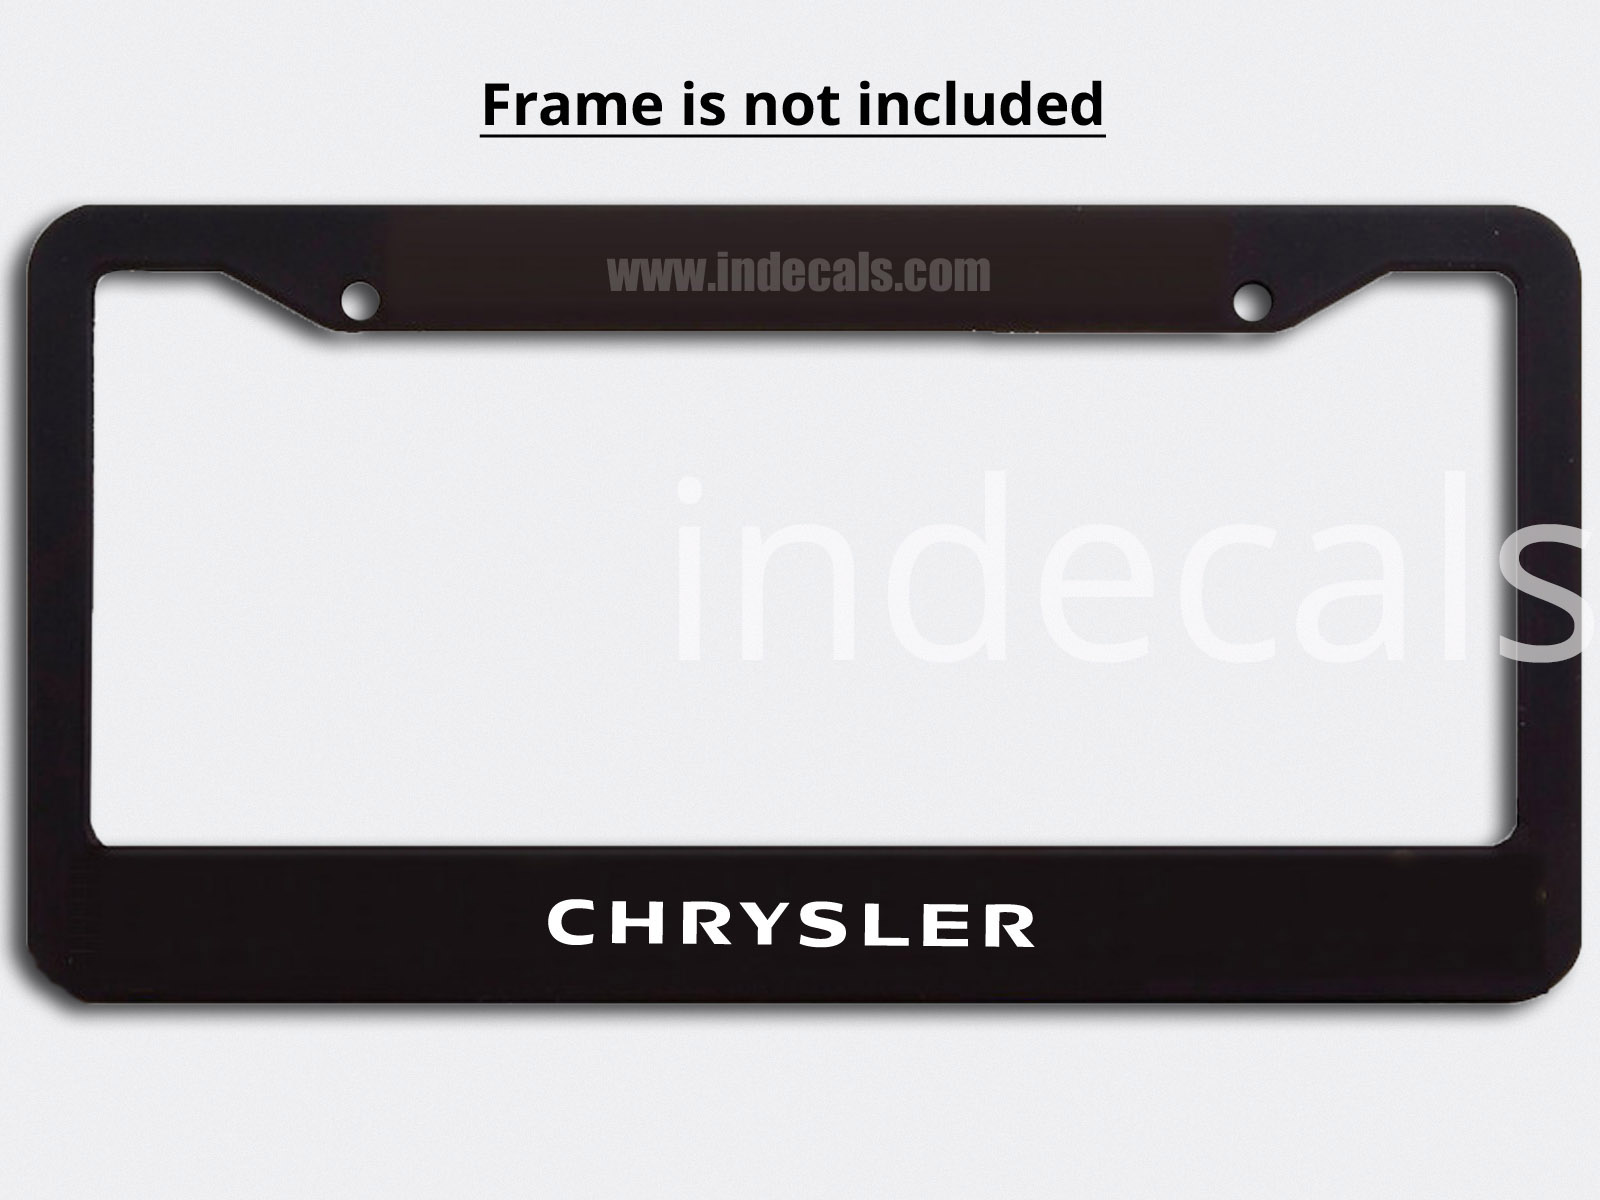 3 x Chrysler Stickers for Plate Frame - White